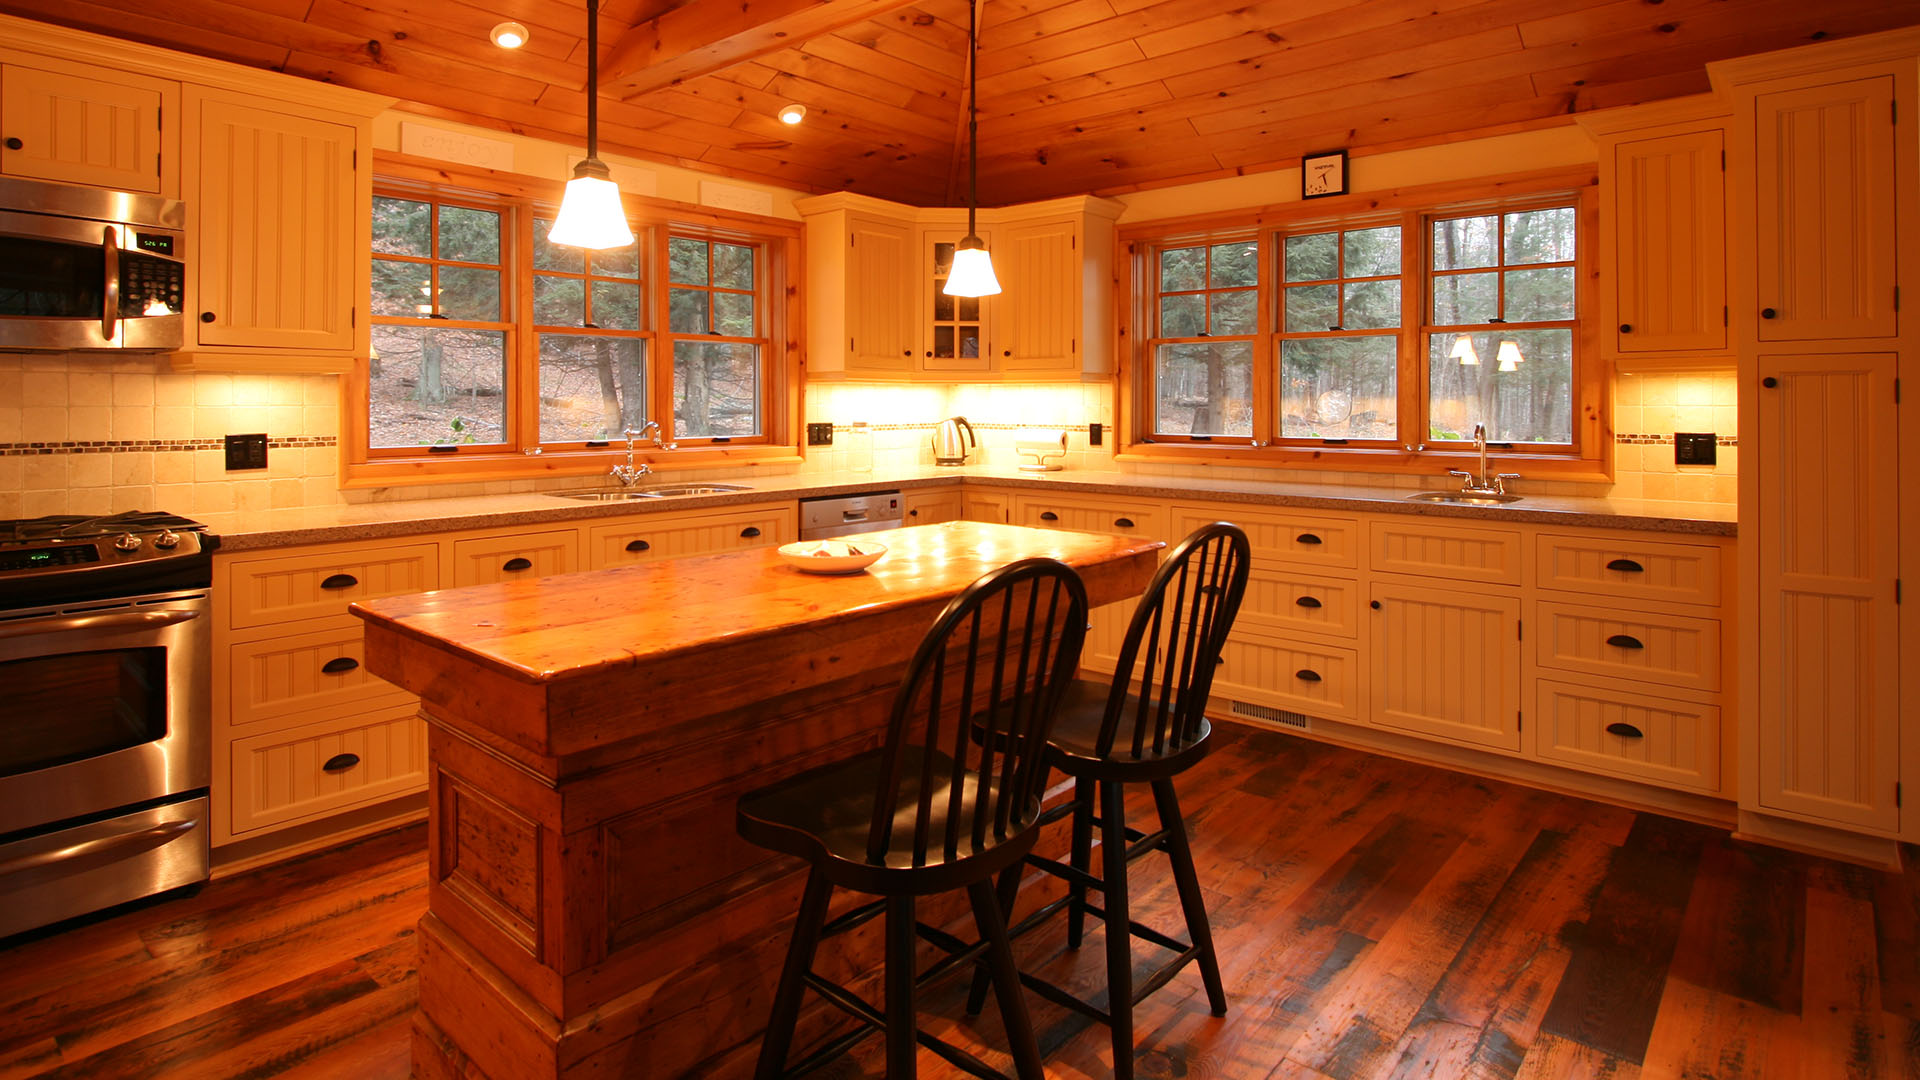 architect designed cottage - lake of bays muskoka - kitchen & island